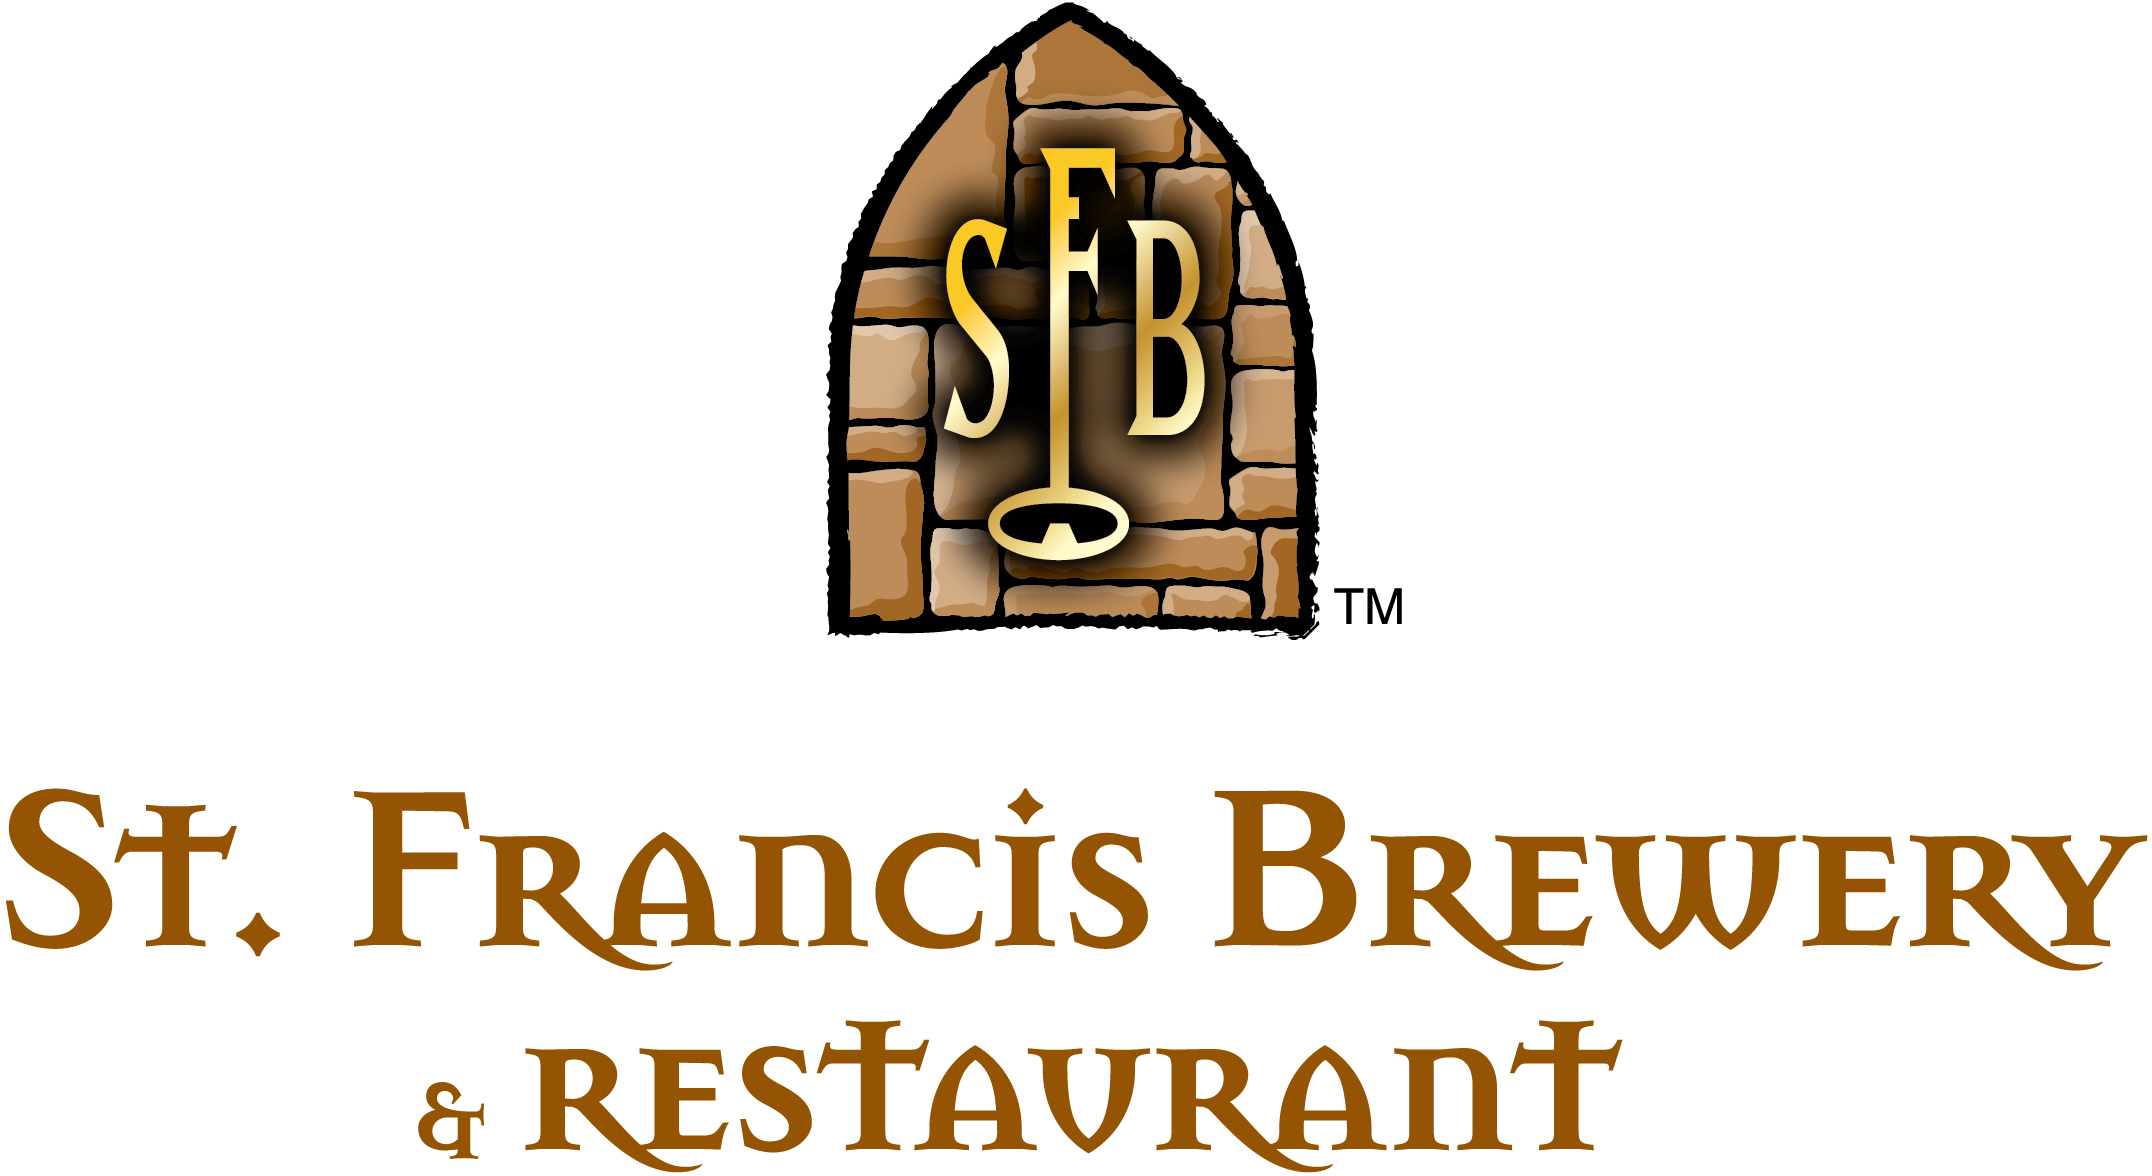 St. Francis Brewery